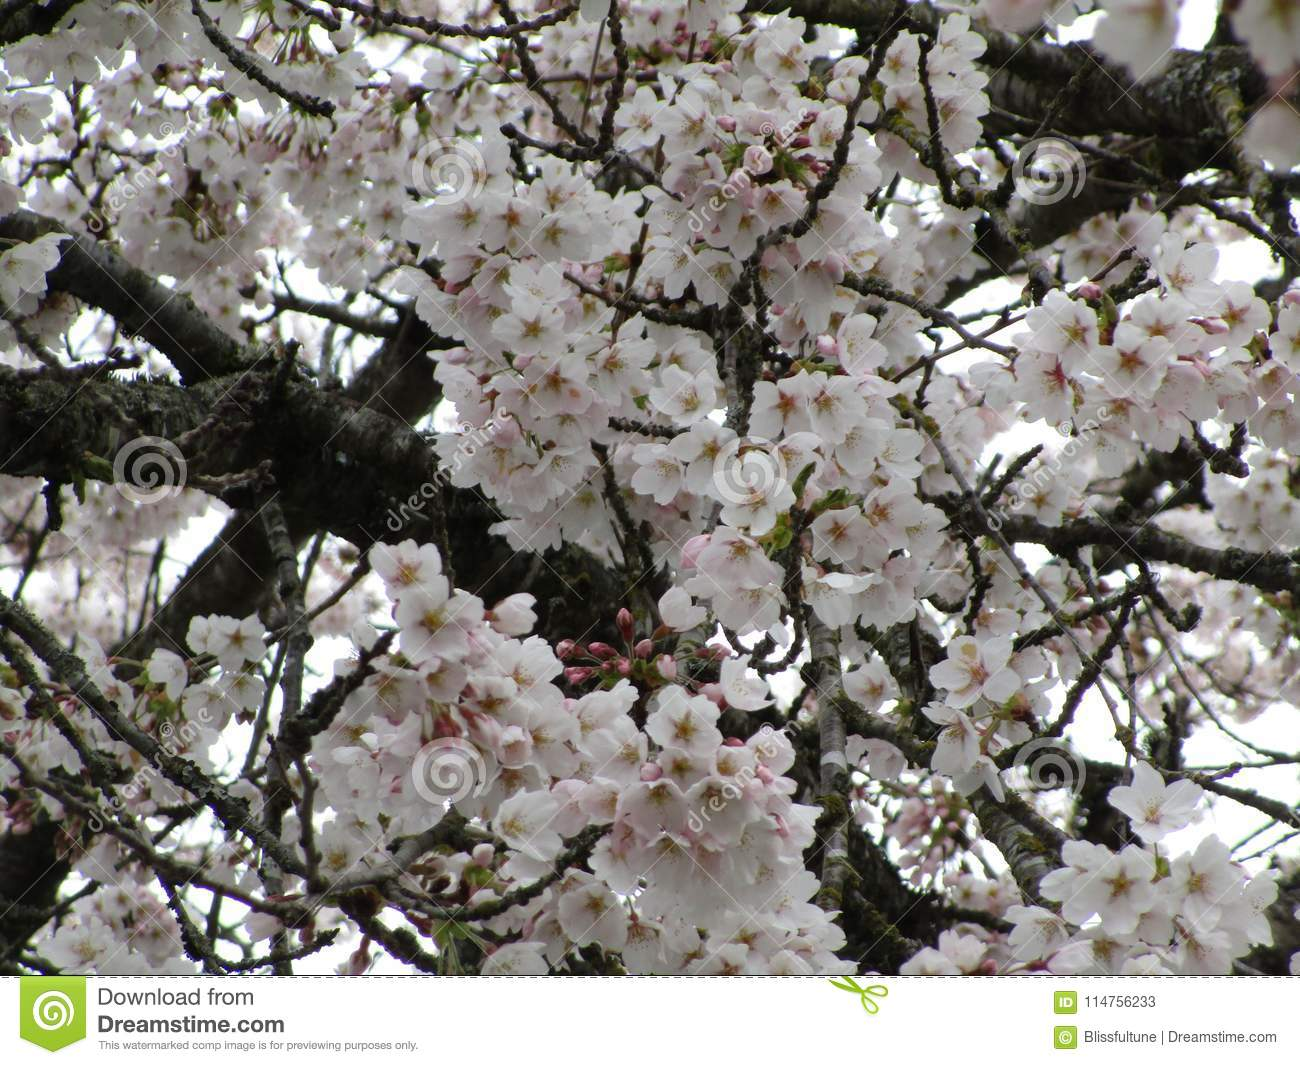 Blooming Lovely And Bright White Cherry Blossom Flowers In Season